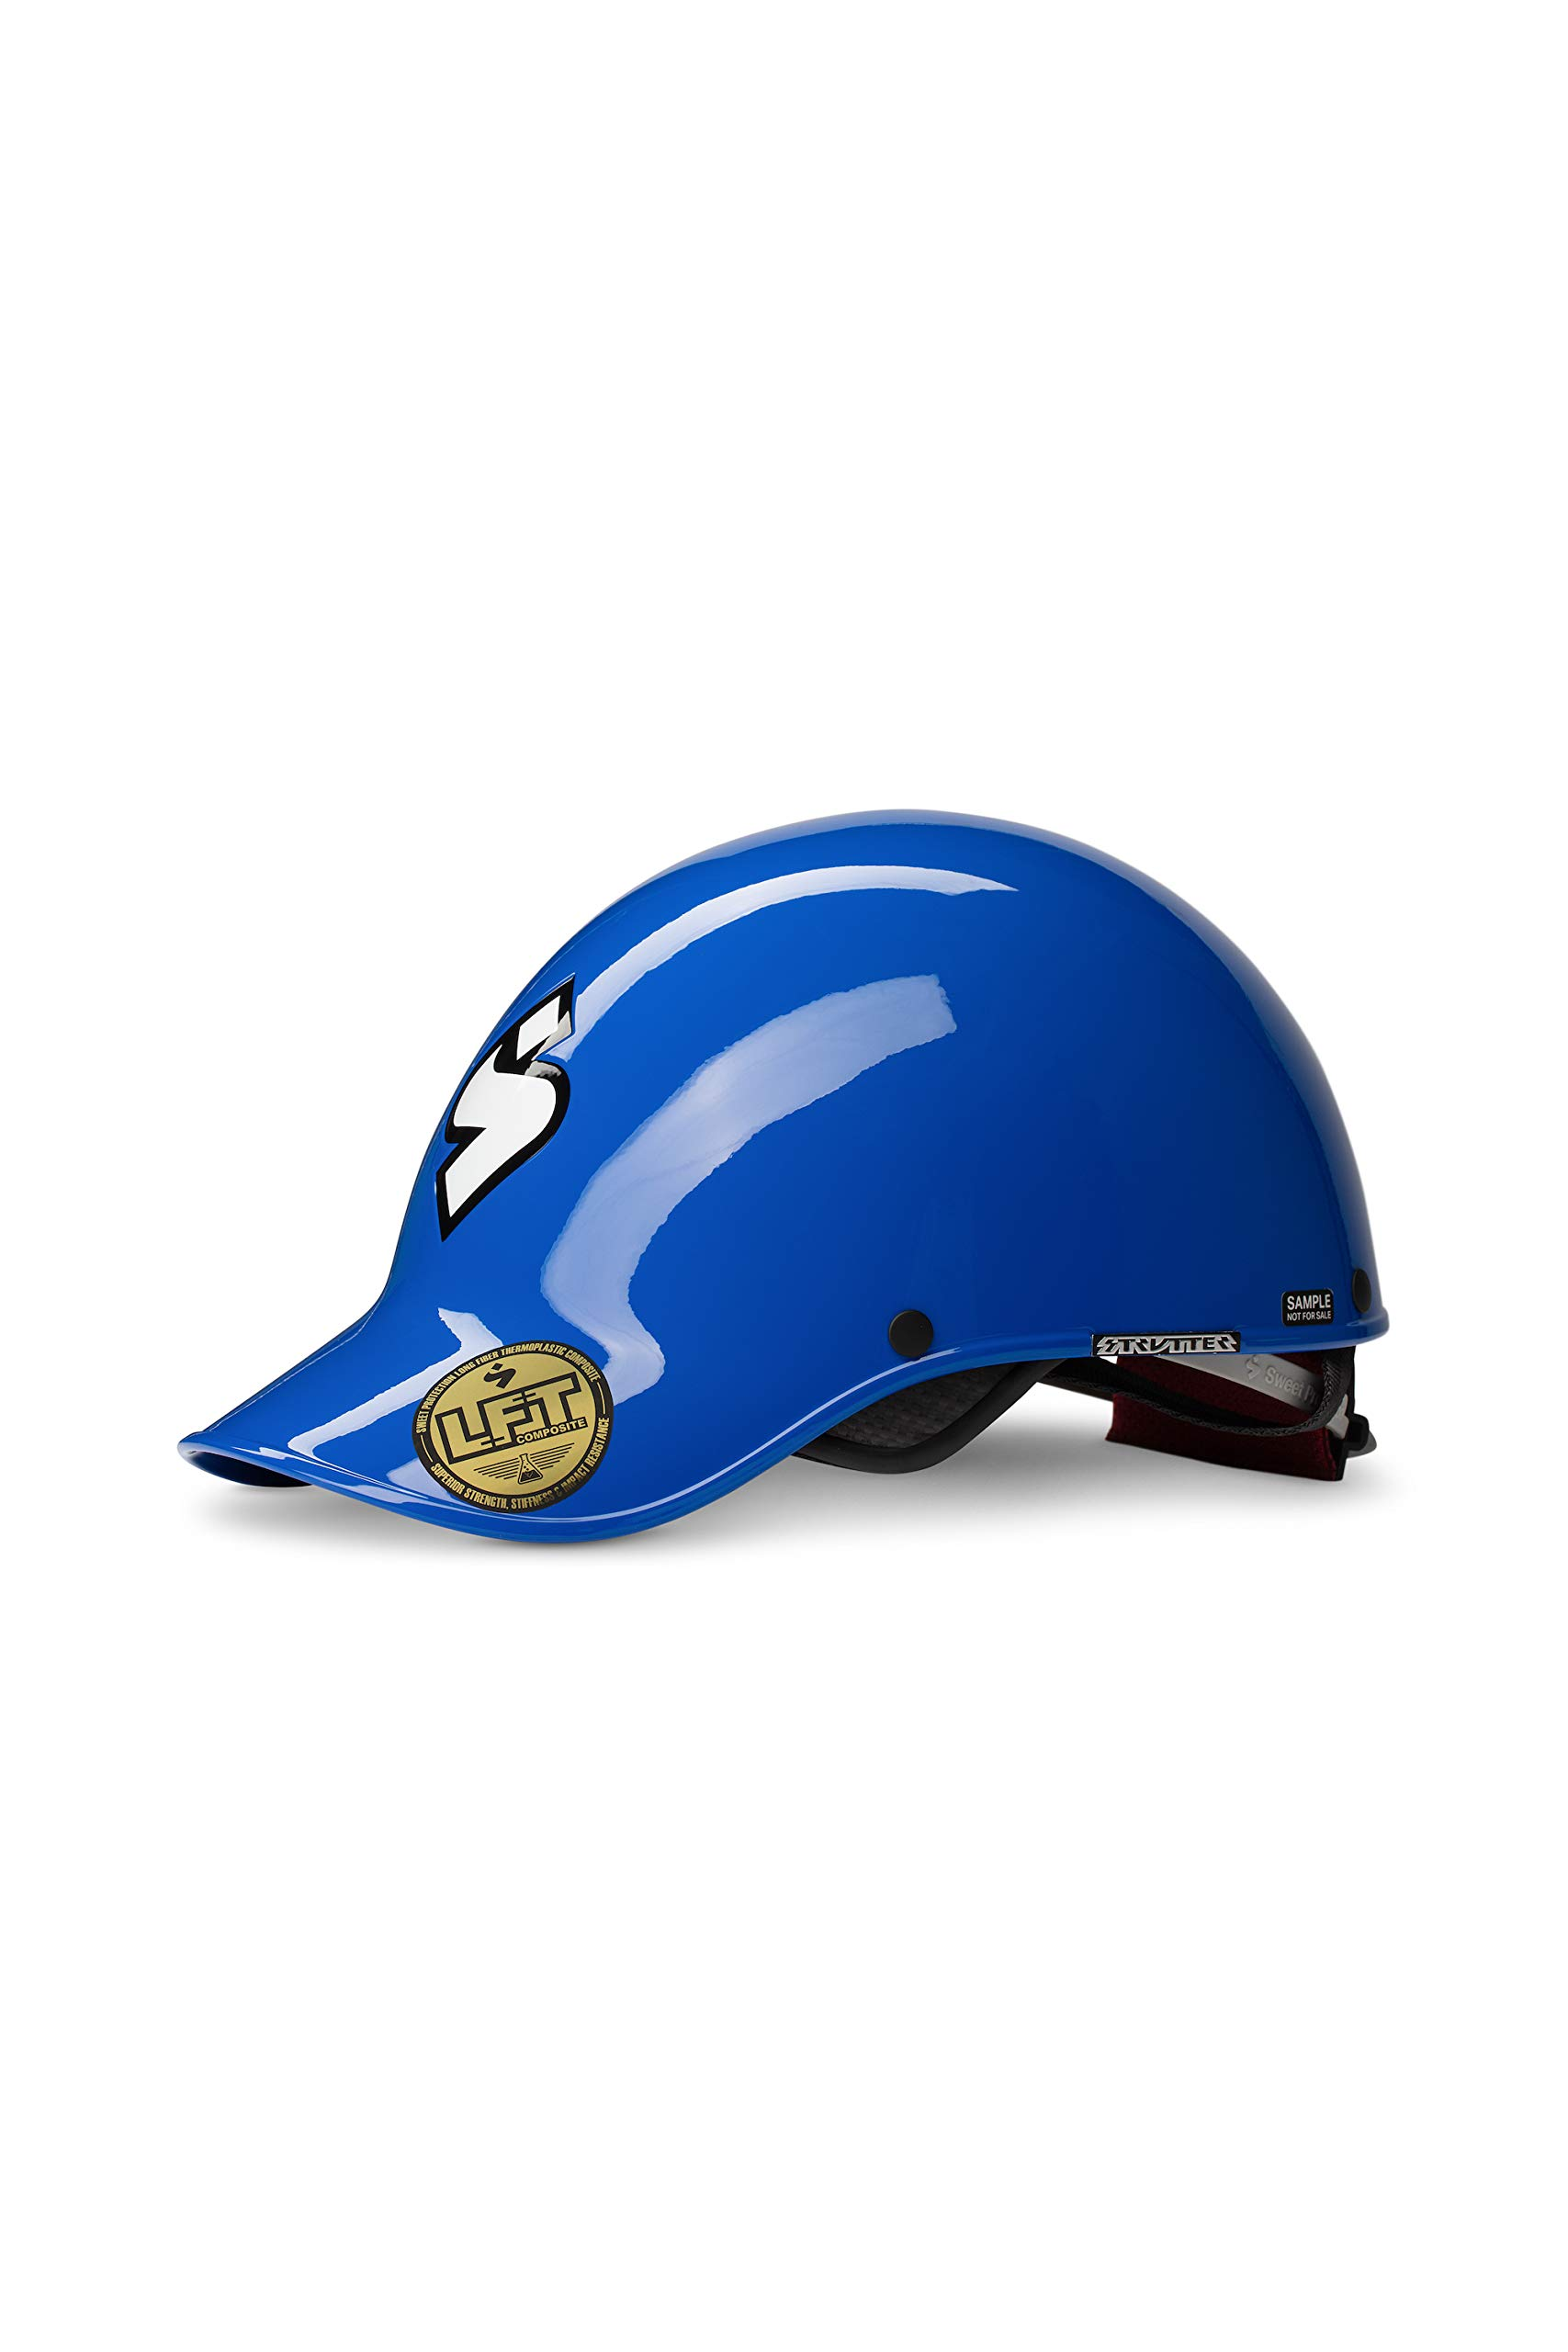 Sweet Protection Strutter Paddle Helmet, Race Blue, ML by Sweet Protection